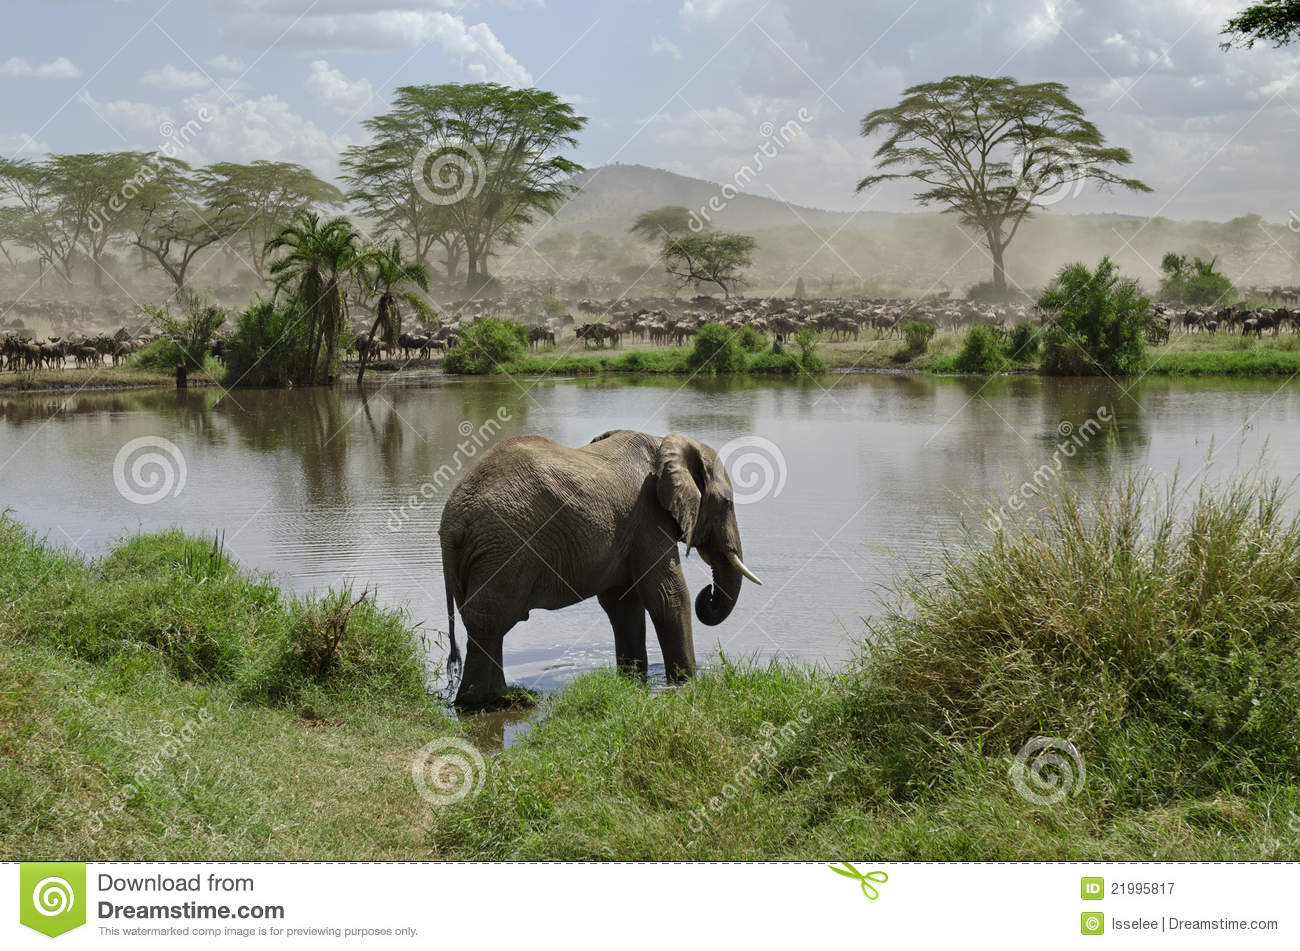 Elephant in river in Serengeti National Park